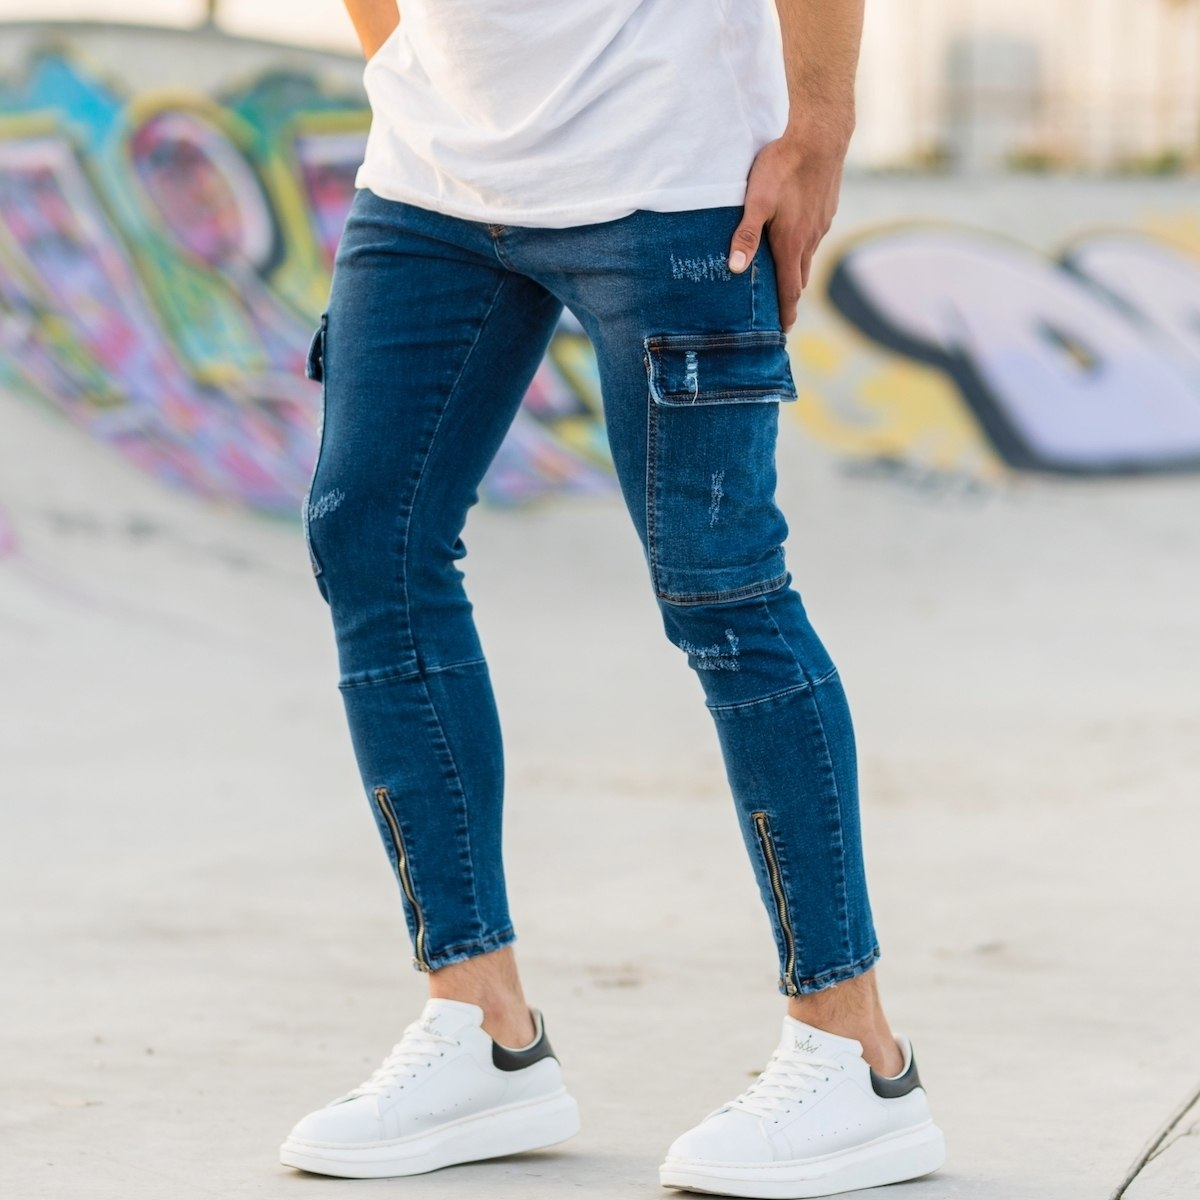 Men's Cargo Jeans With...